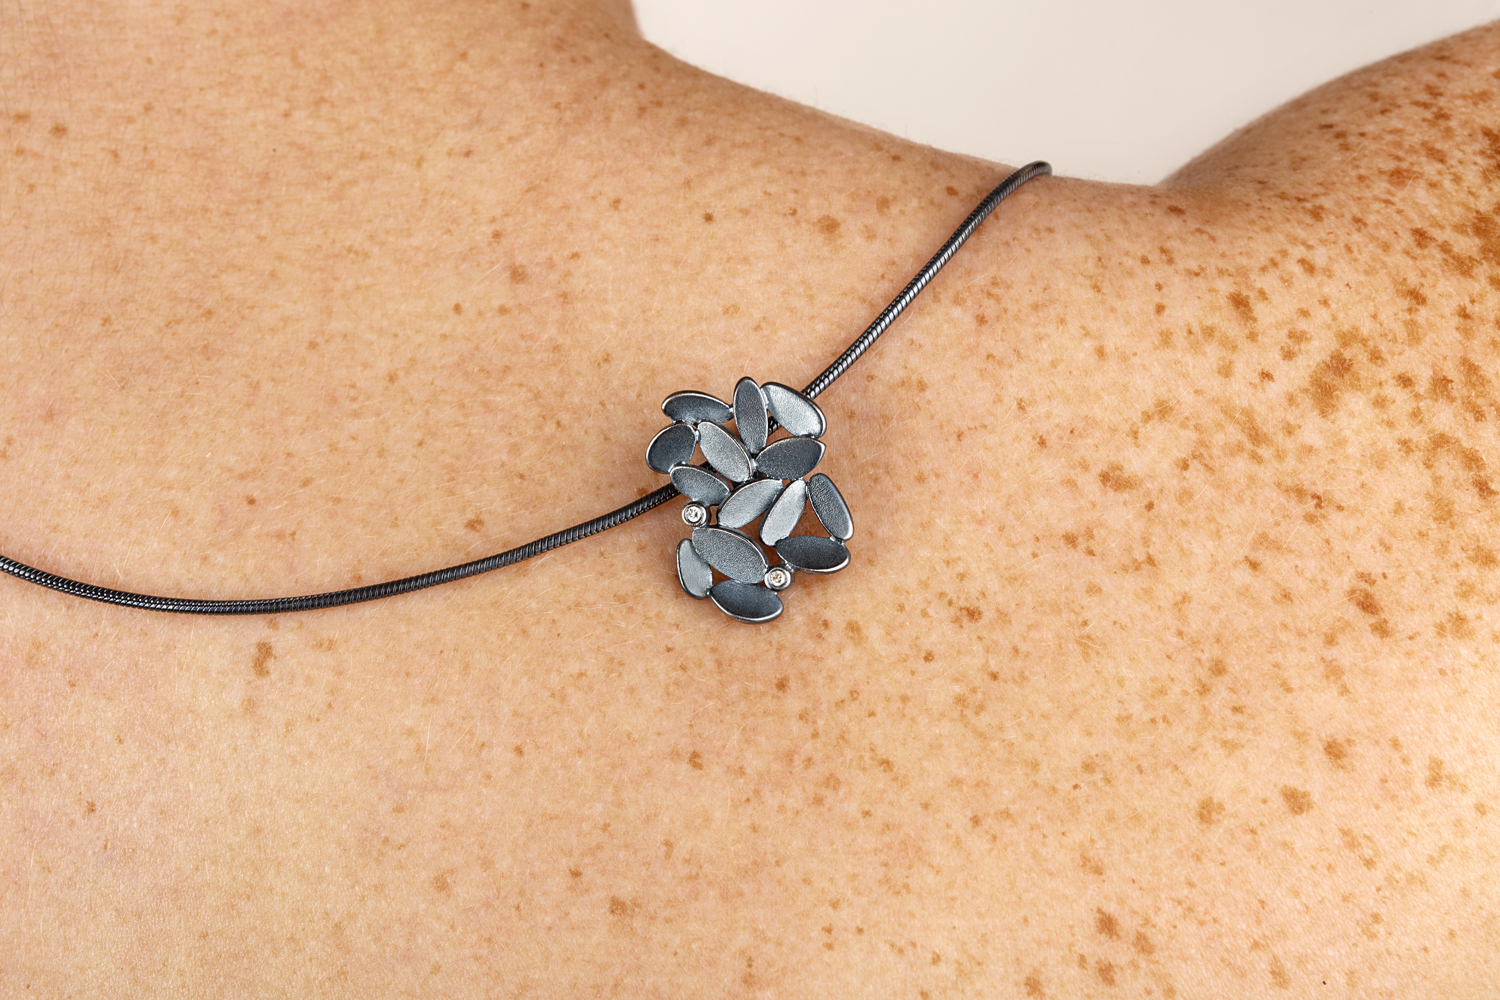 #1123 Glimmer lyng pendant with 2 diamonds